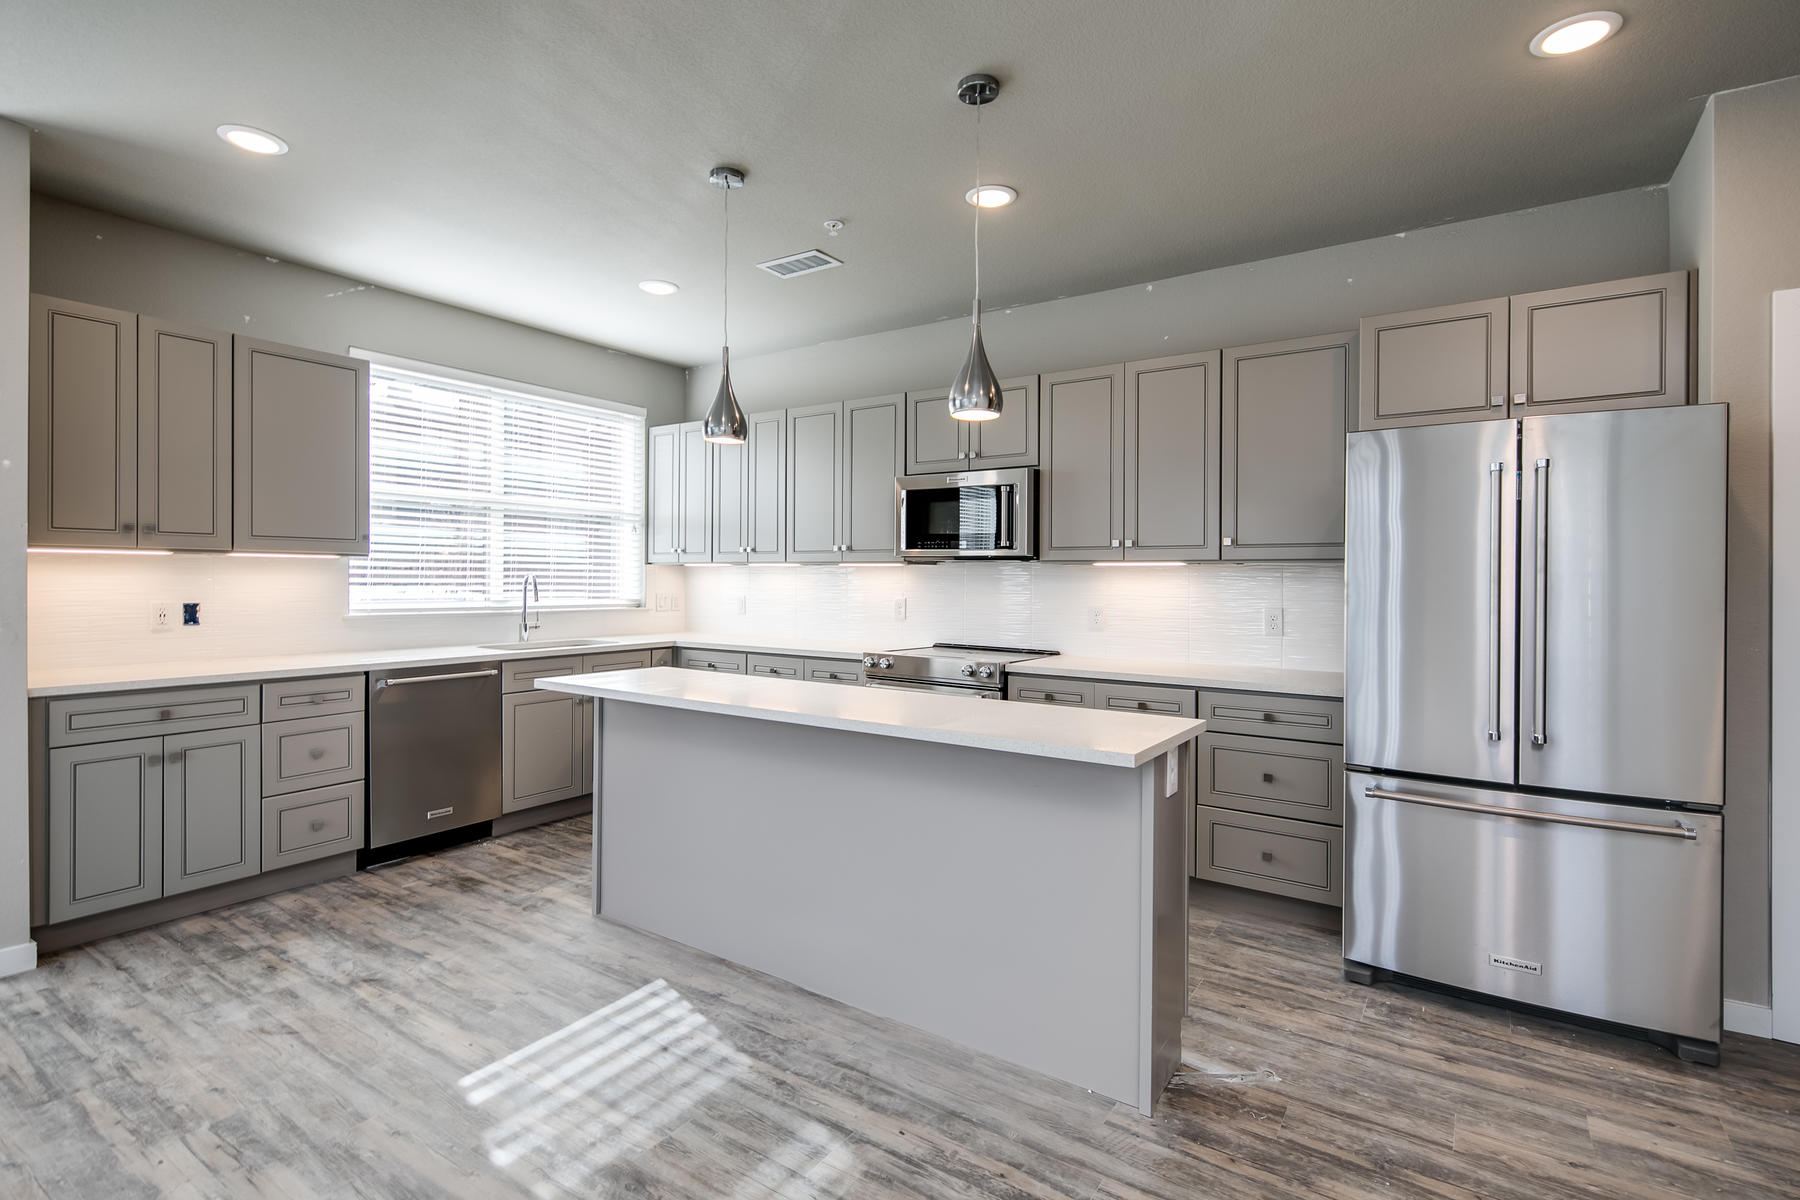 Additional photo for property listing at 155 South Monaco Parkway #209 155 S Monaco Pkwy #209 Denver, Colorado 80224 United States